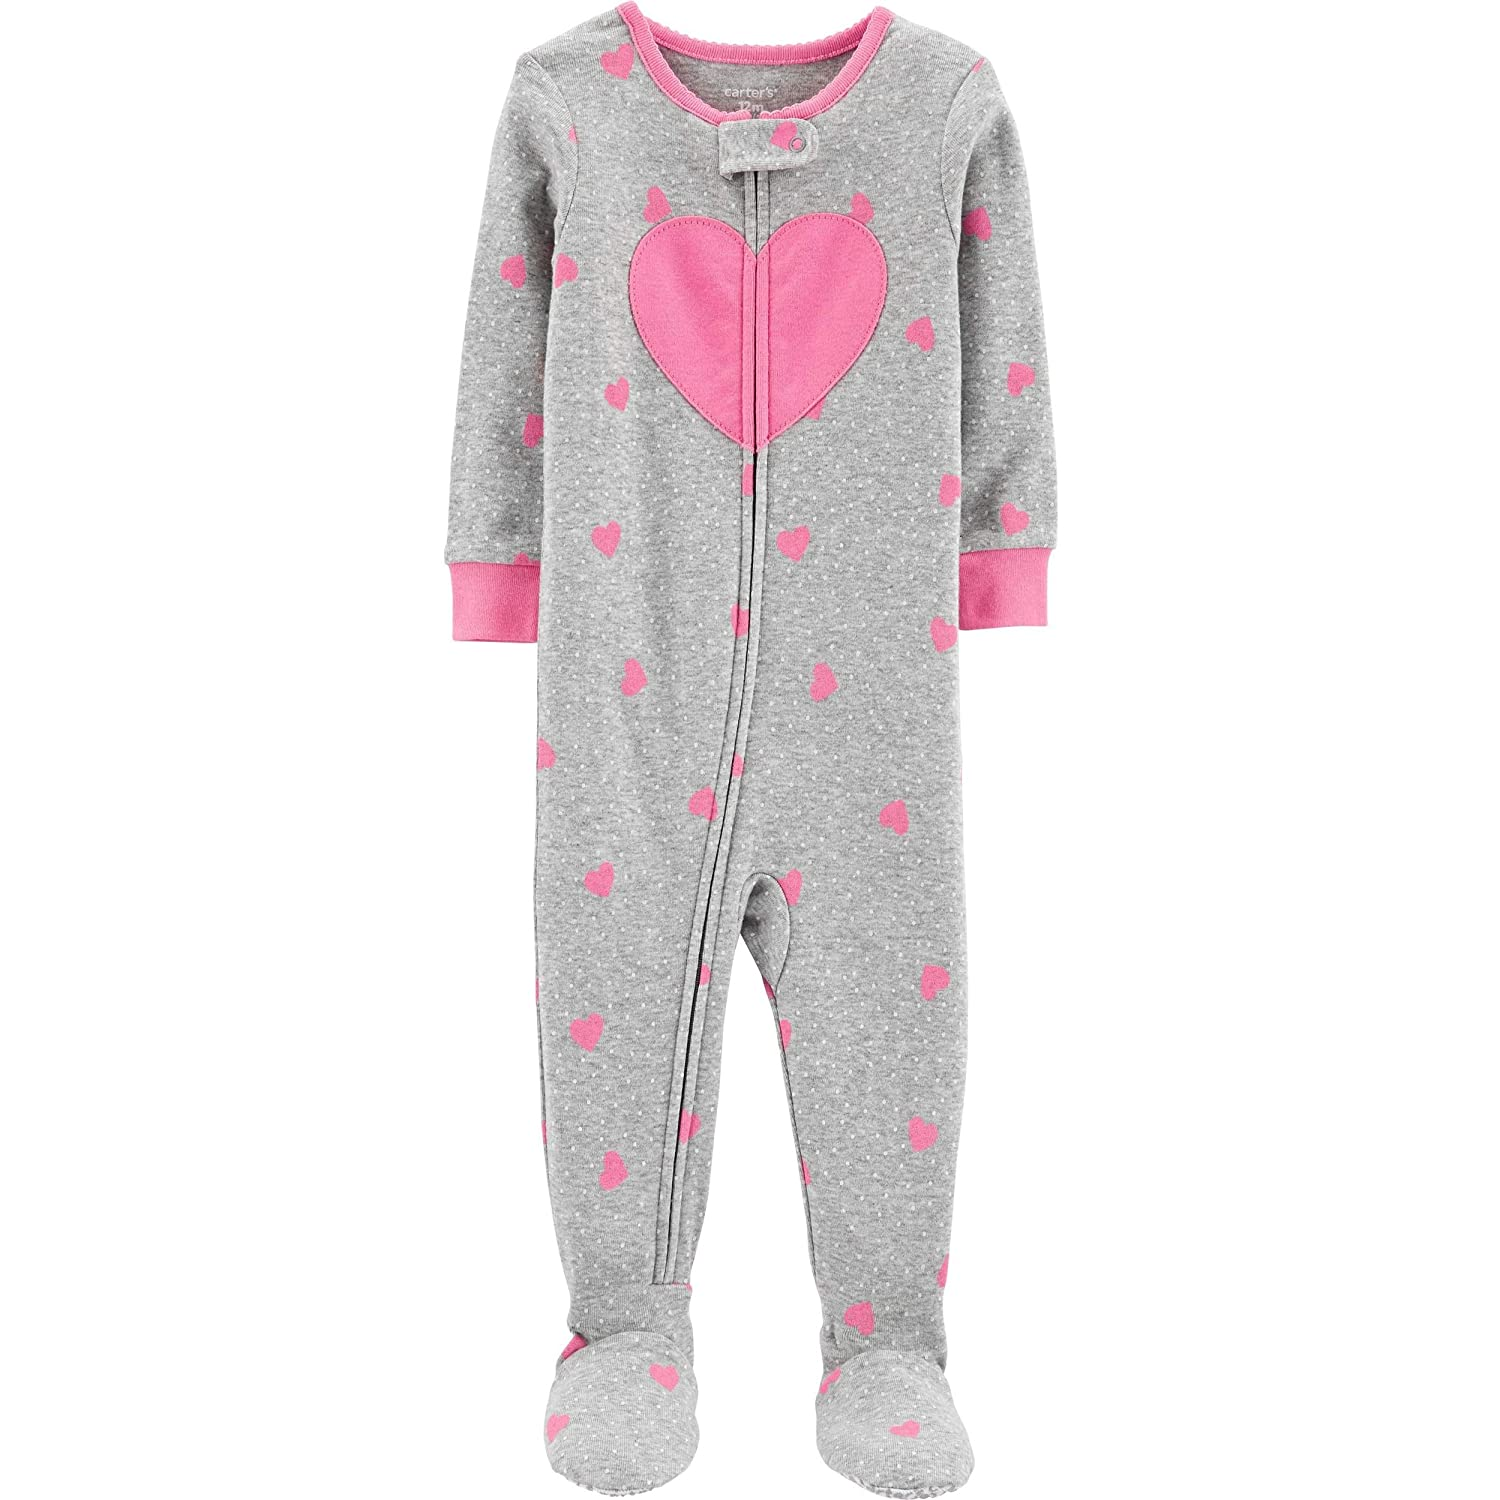 2539489a3 Amazon.com  Carter s Girls  1 Pc Cotton 331g244  Clothing